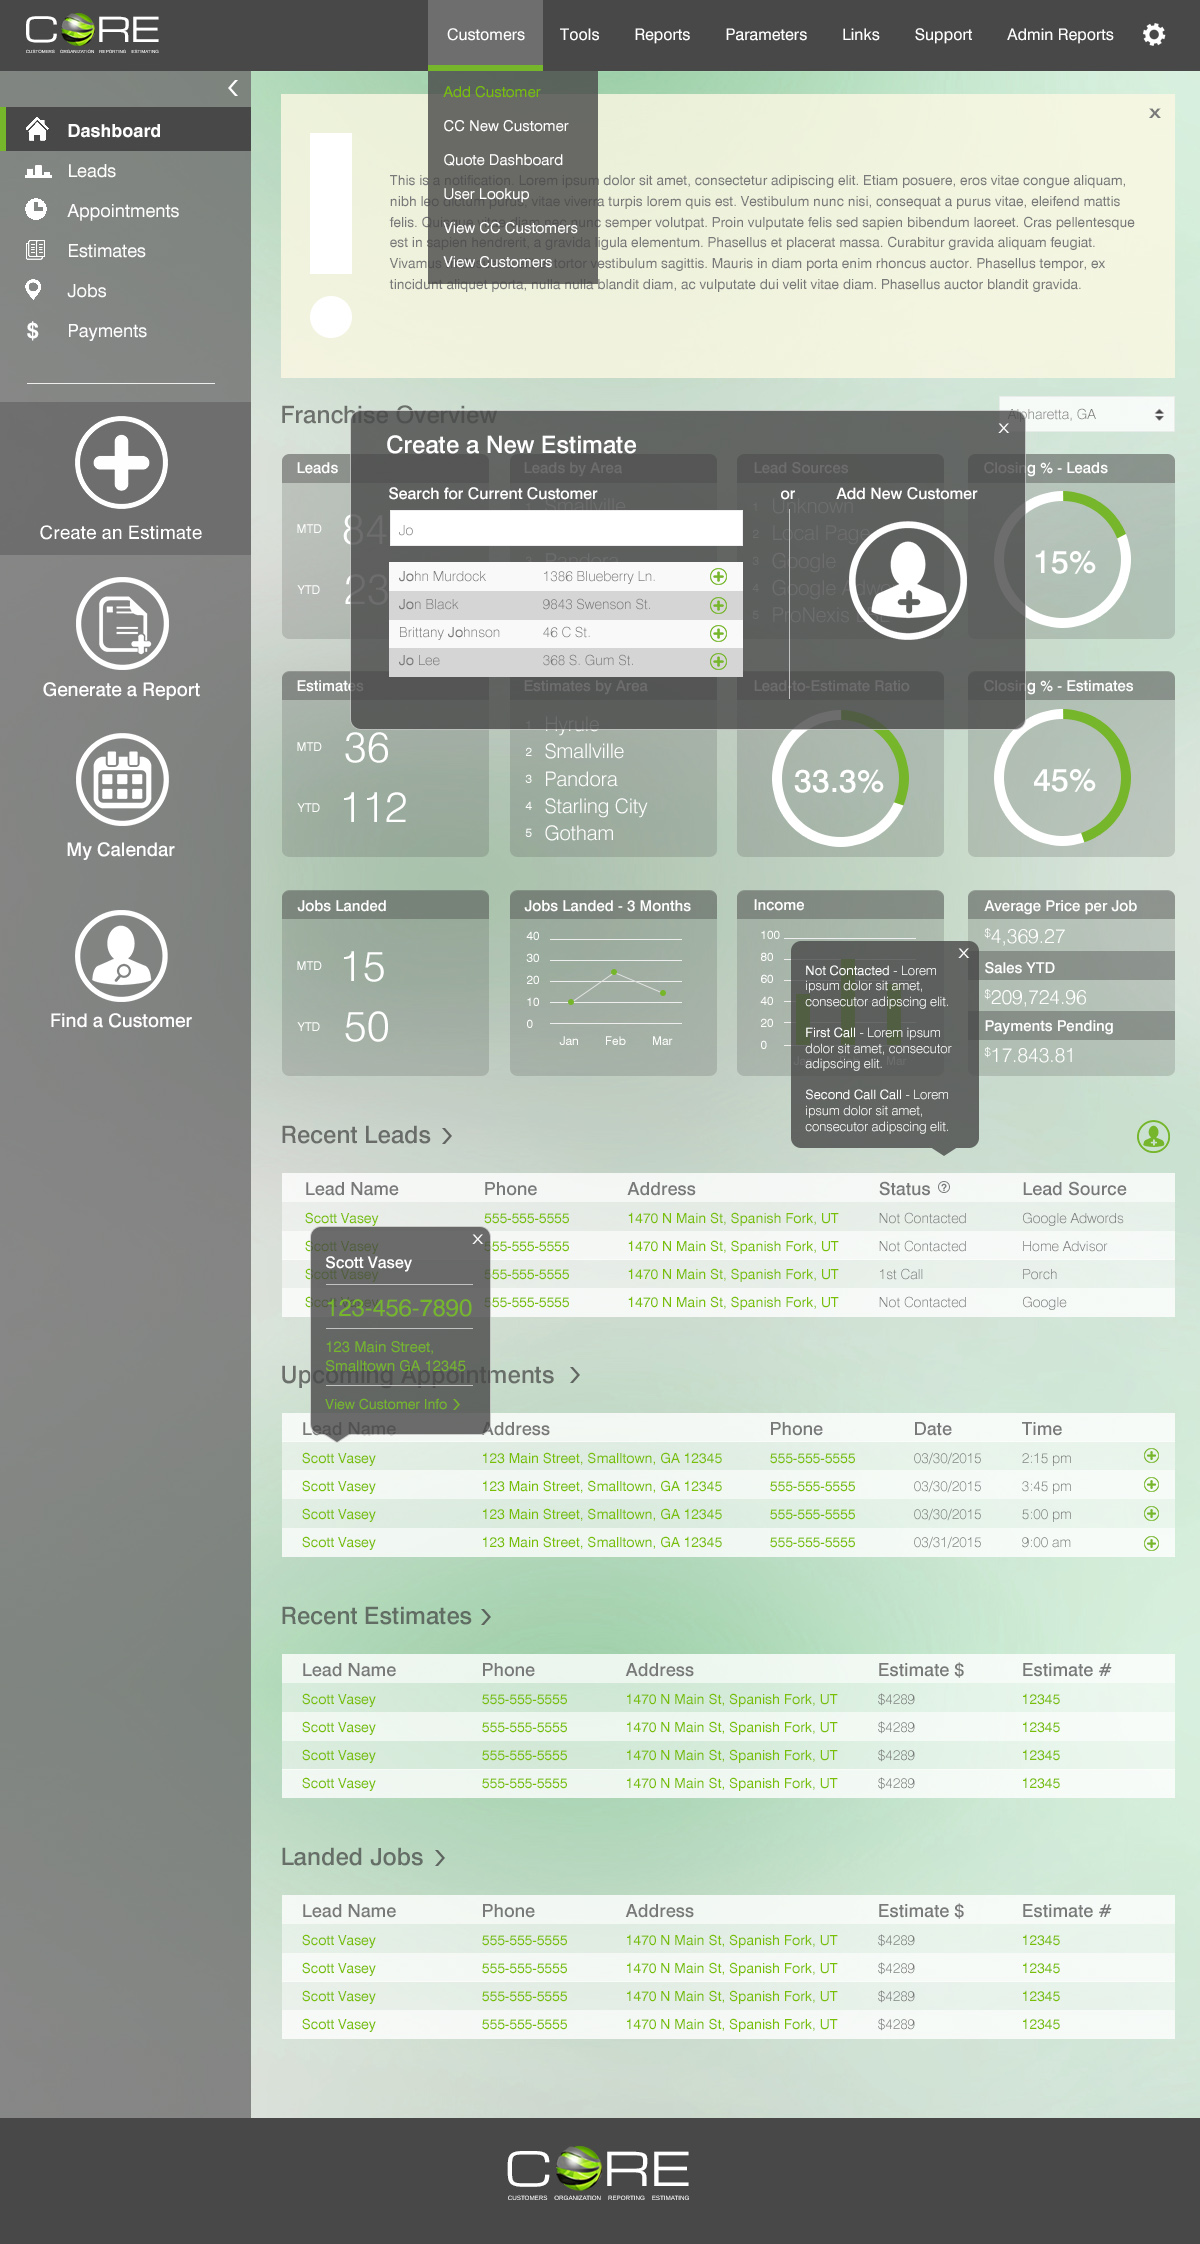 CORE 2.0 Dashboard with Popups